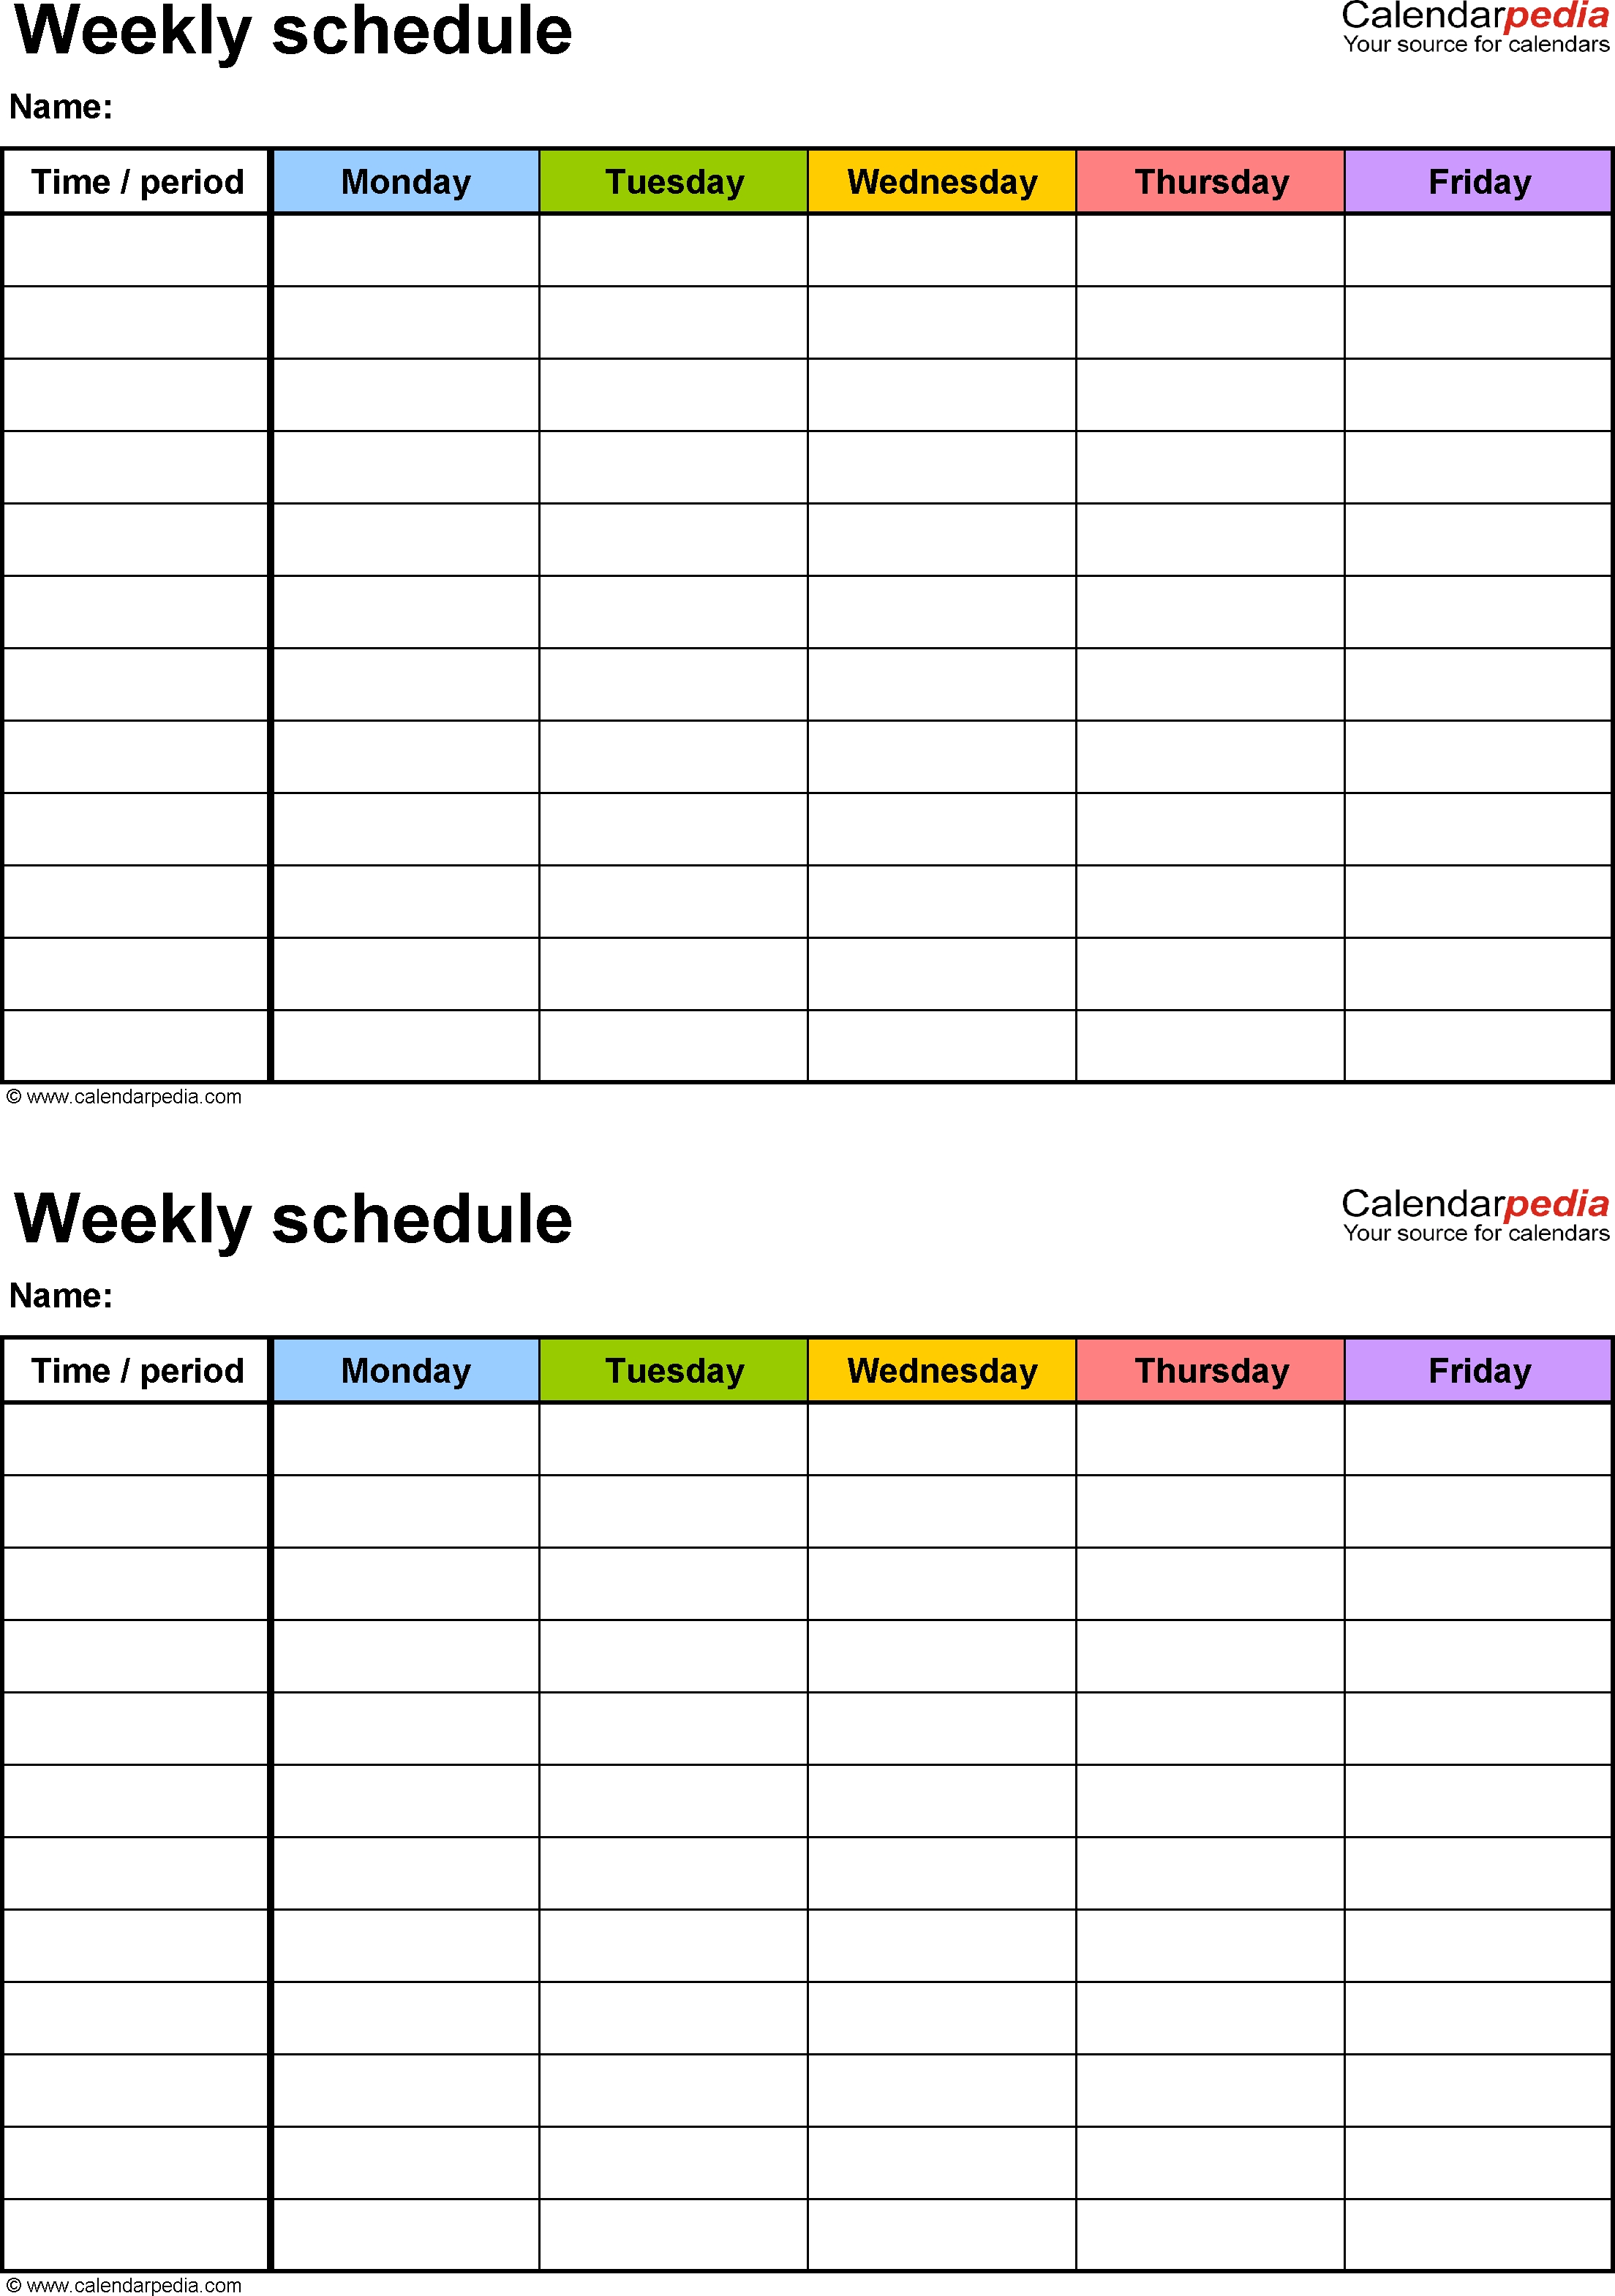 Free Weekly Schedule Templates For Word - 18 Templates within Blank Calendar Chart For Classrooms